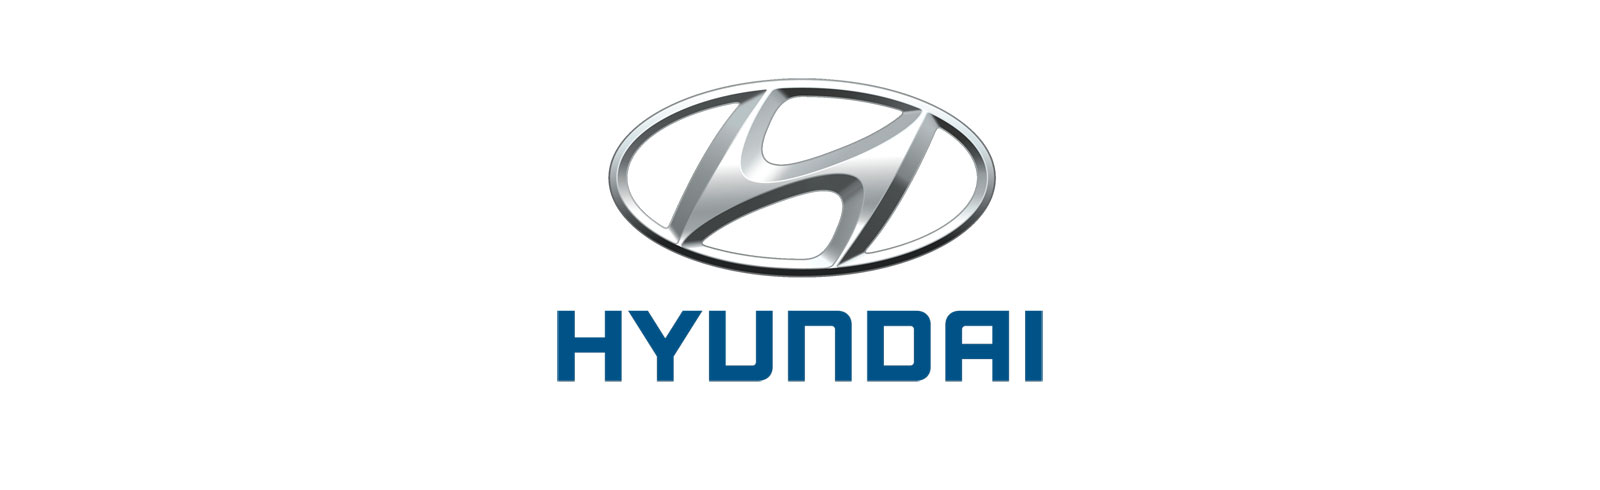 Hyundai-Kia will build its own DC charging network in South Korea, will be open to third parties